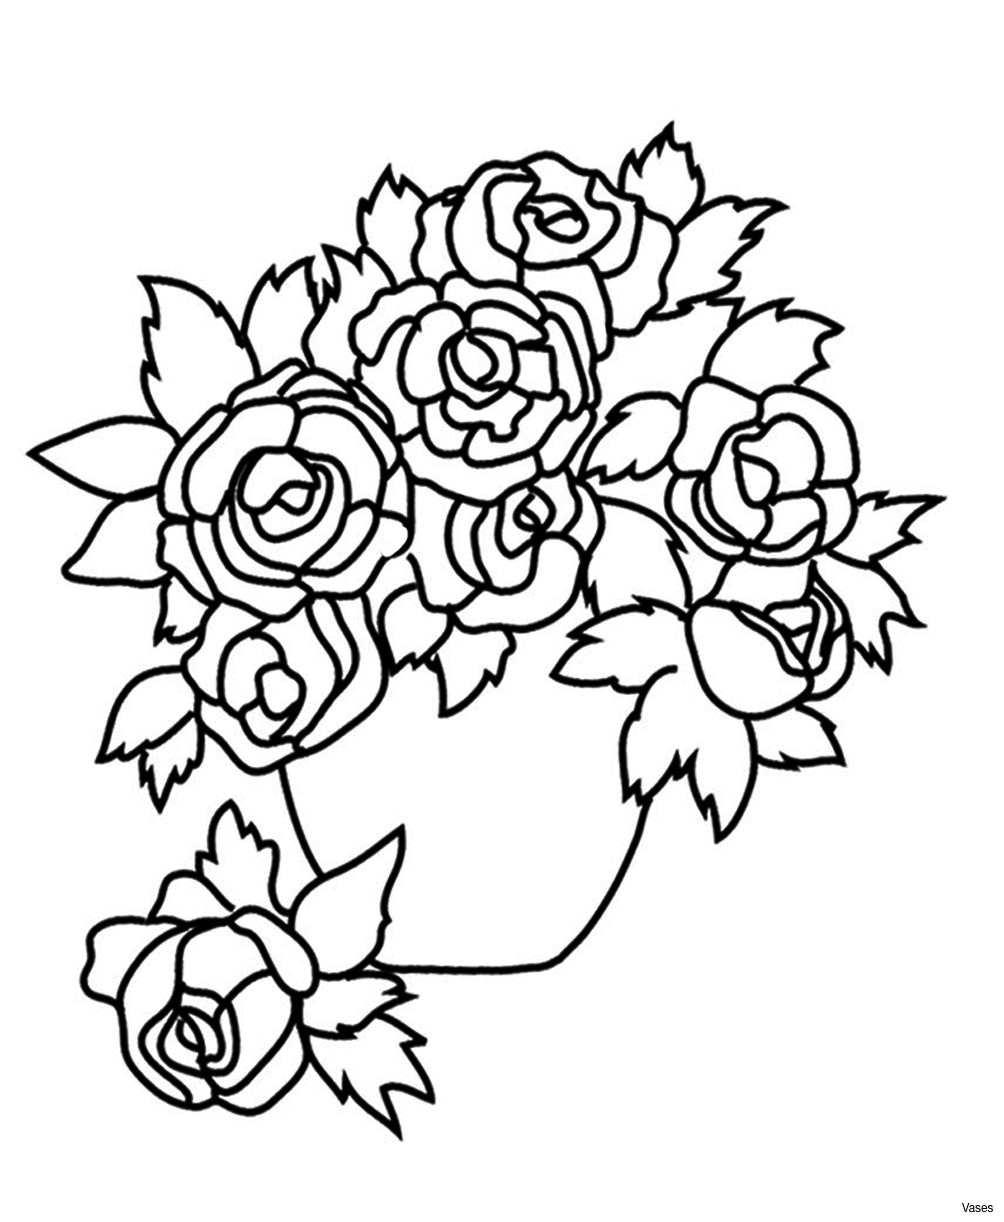 Huge Flower Vase Of New Fresh S S Media Cache Ak0 Pinimg originals 0d B4 2c Free Fun Time with Free Easy Coloring Pages Printable Pencil Sketch Flower Vase Easy Drawn Drawing and In Color